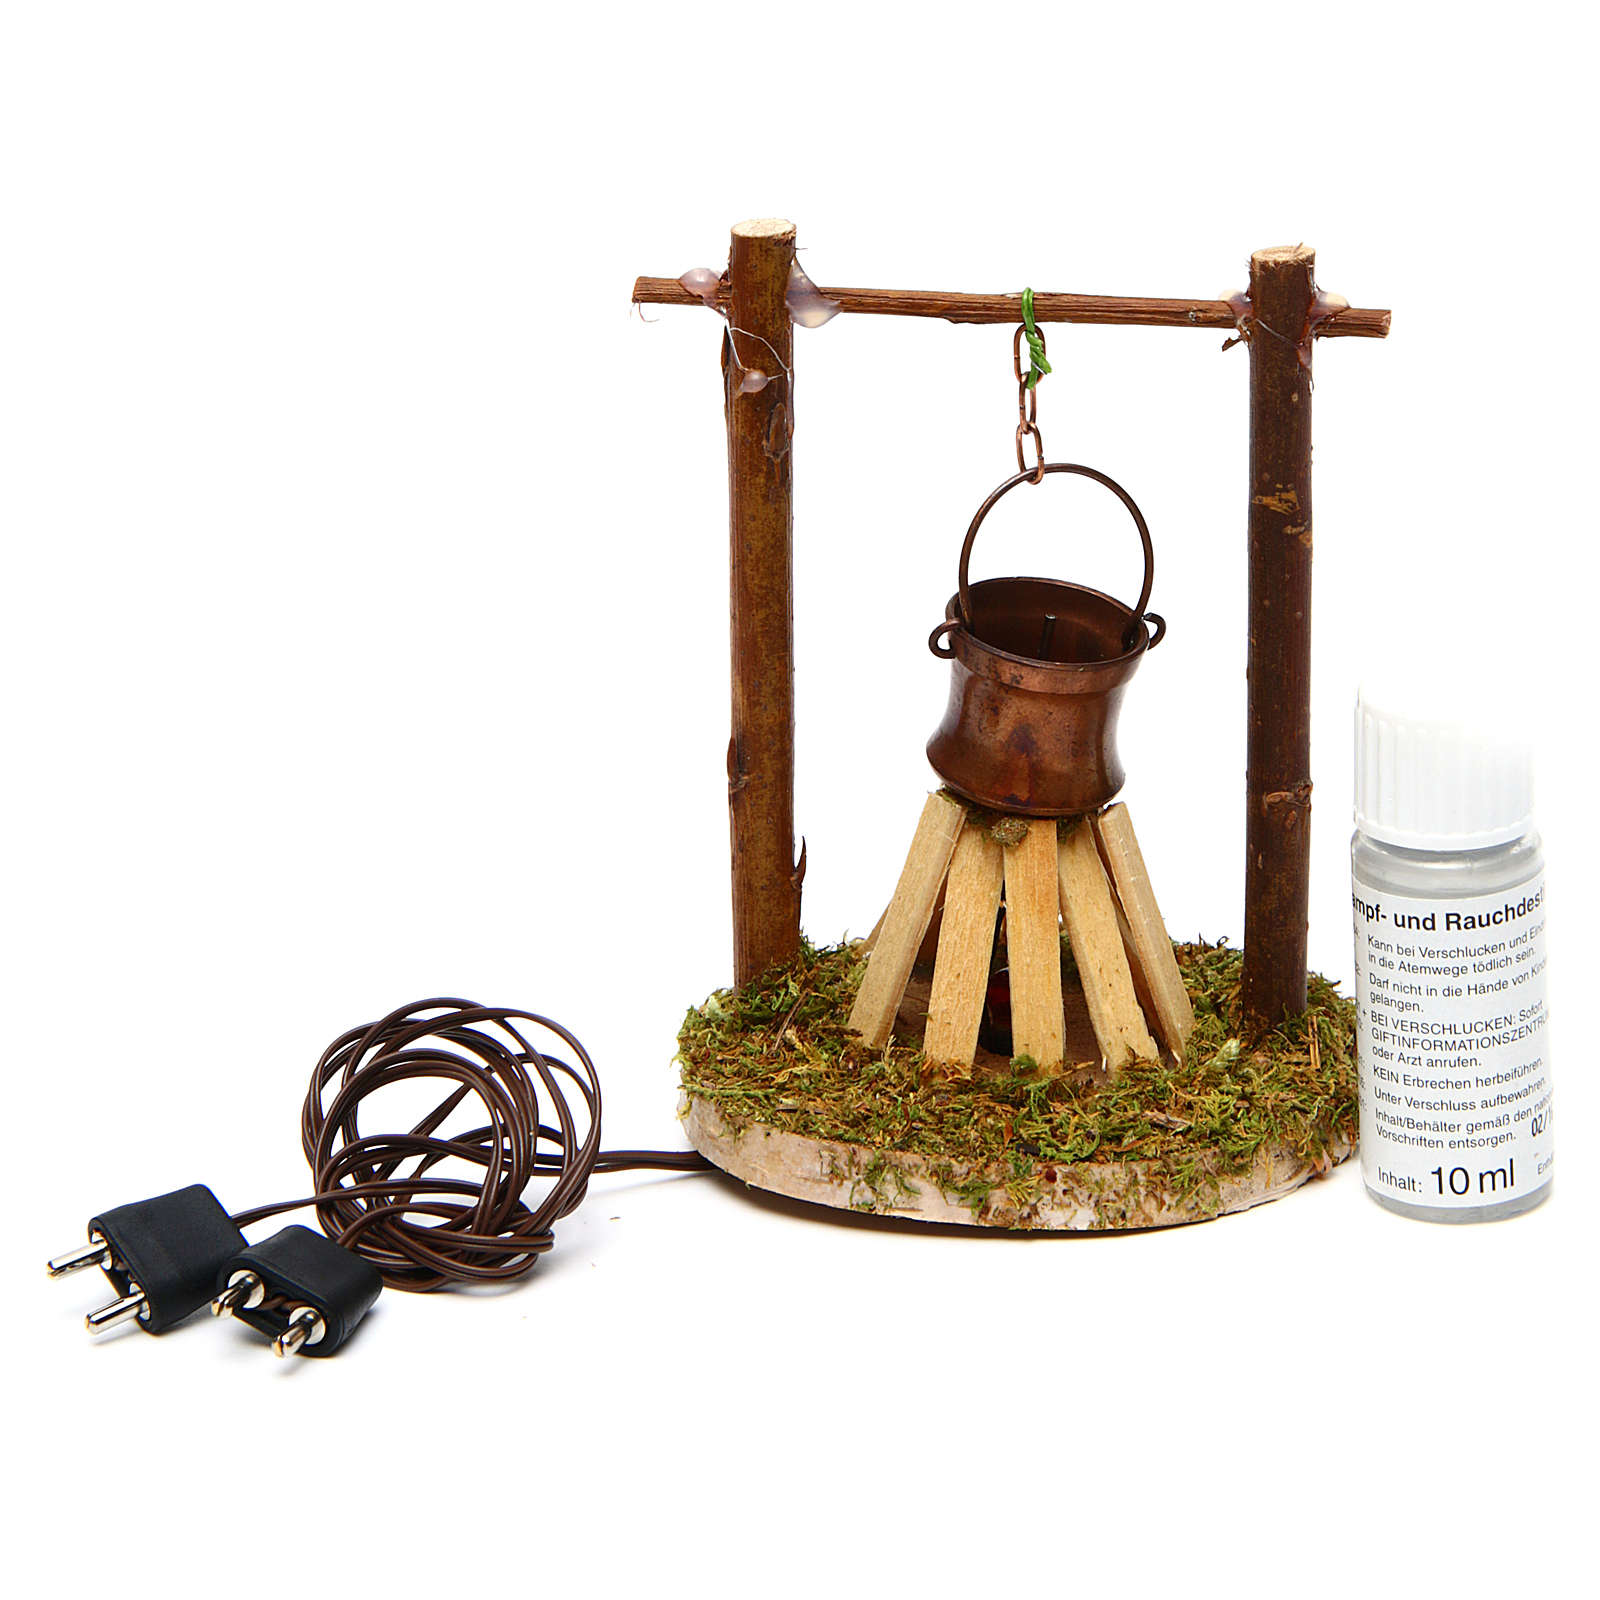 Camp fire cauldron with smoke and light 4,5V h. 9x6cm 4